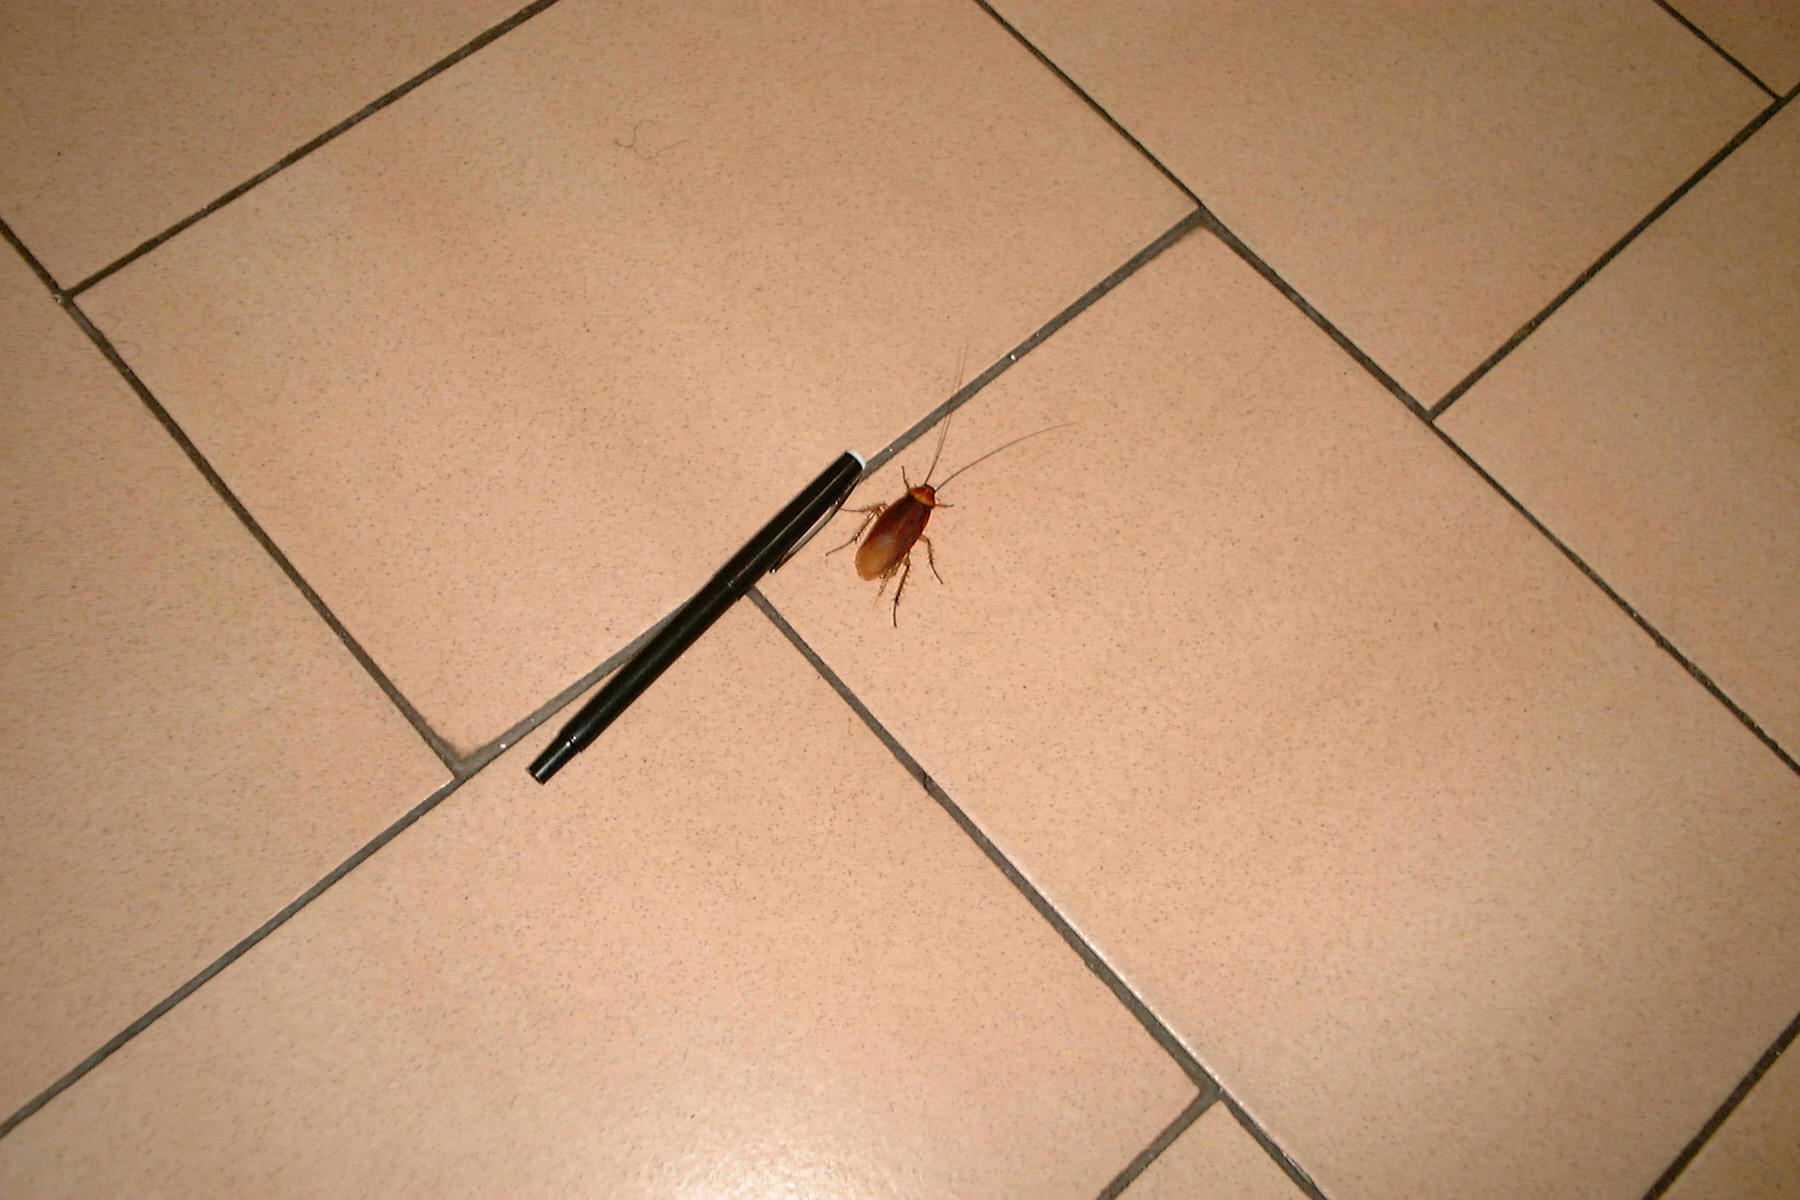 Insect seen on floor (Casablanca, Morocco 23-05-2004) (purpose of page is to display an image)